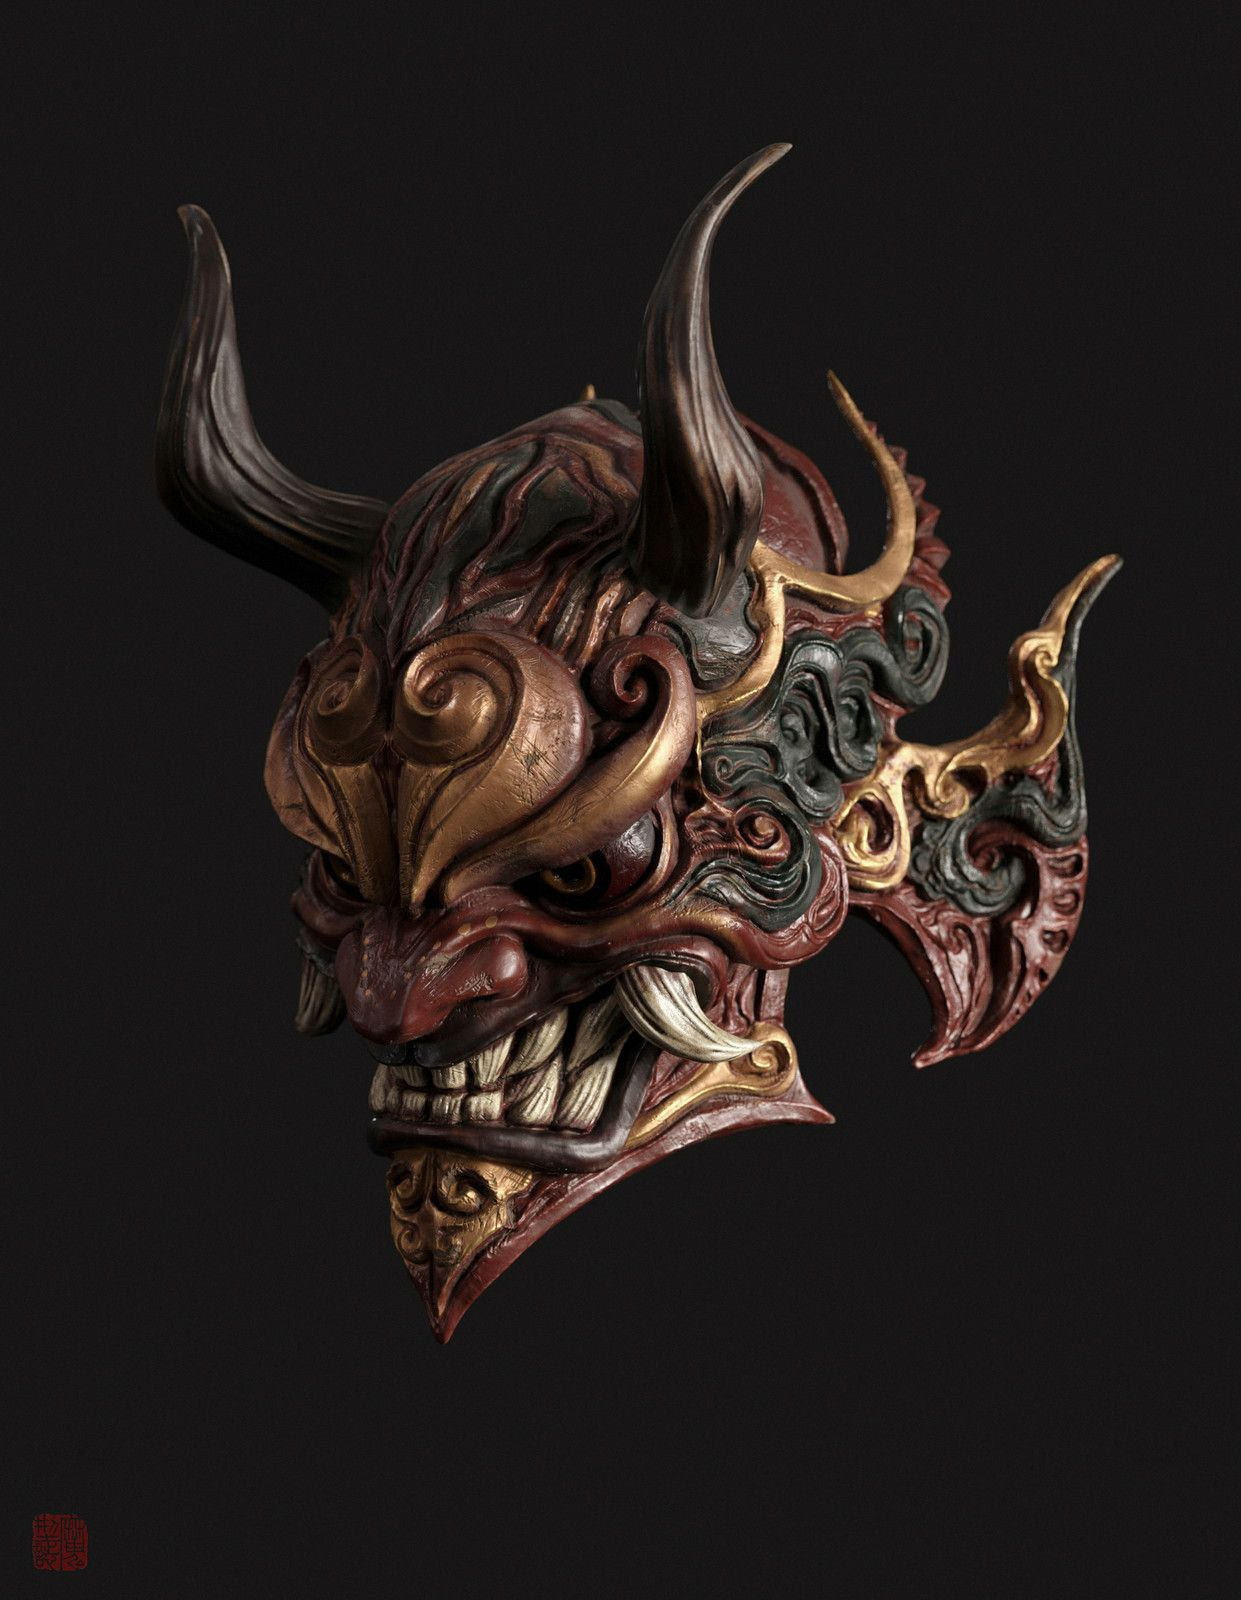 Mask Shao Zhijiao On Artstation At Https Www Artstation Com Artwork Ennpa Oni Mask Japanese Demon Mask Oni Mask Tattoo